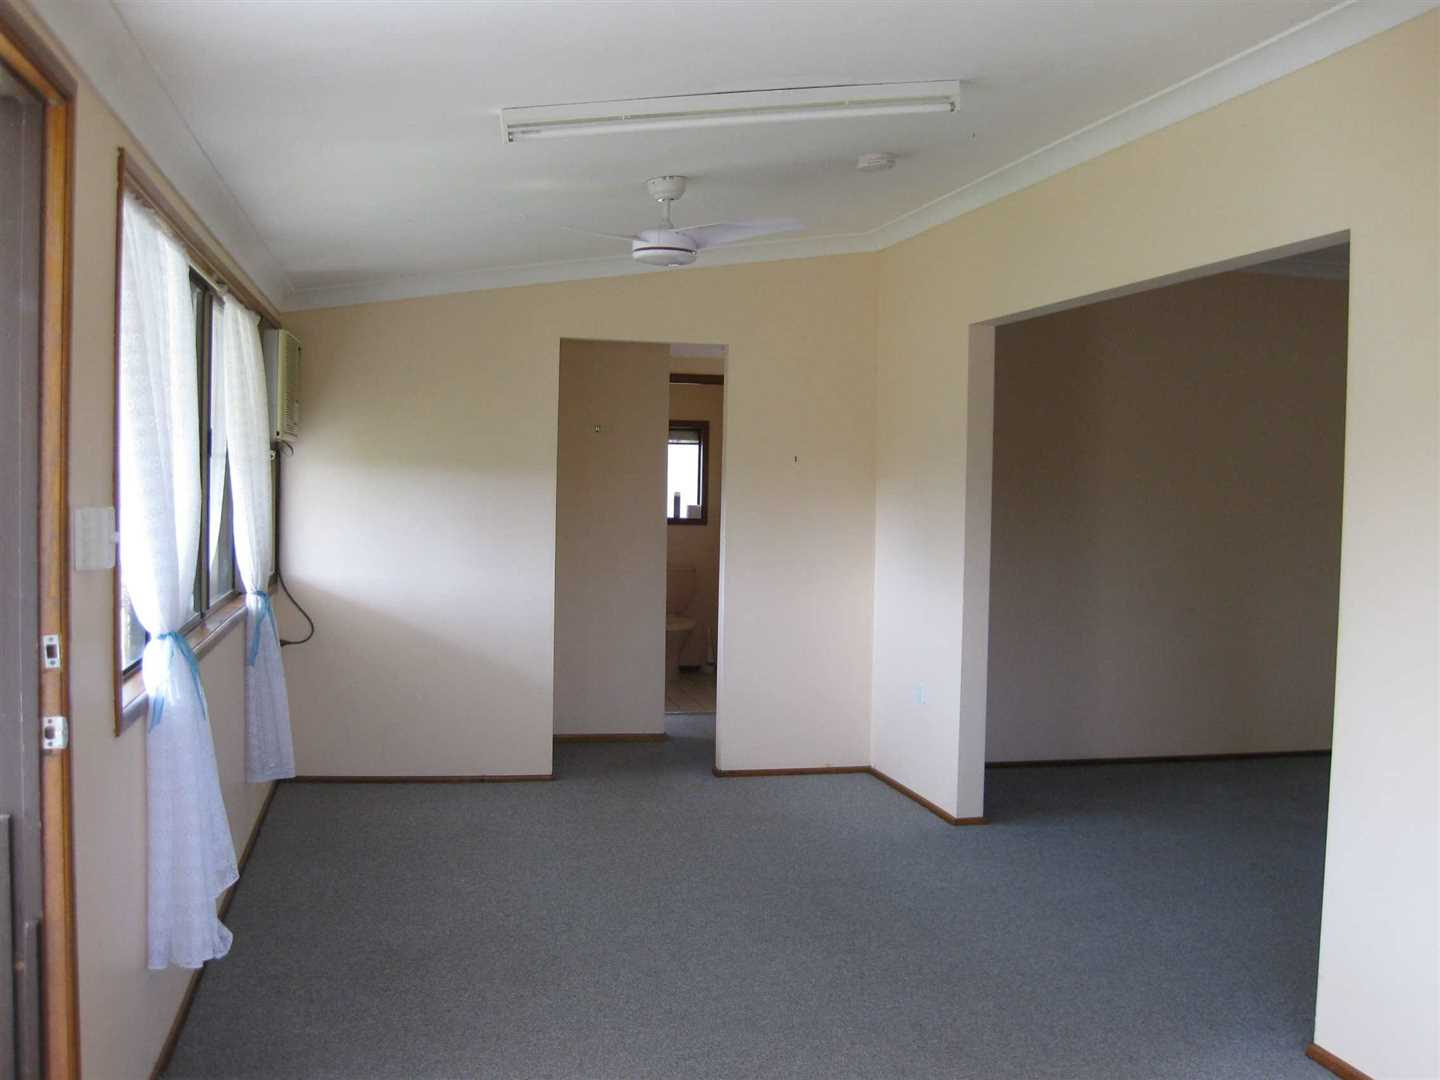 Inside view of part of home showing part of formal dining area and part of lounge to the right